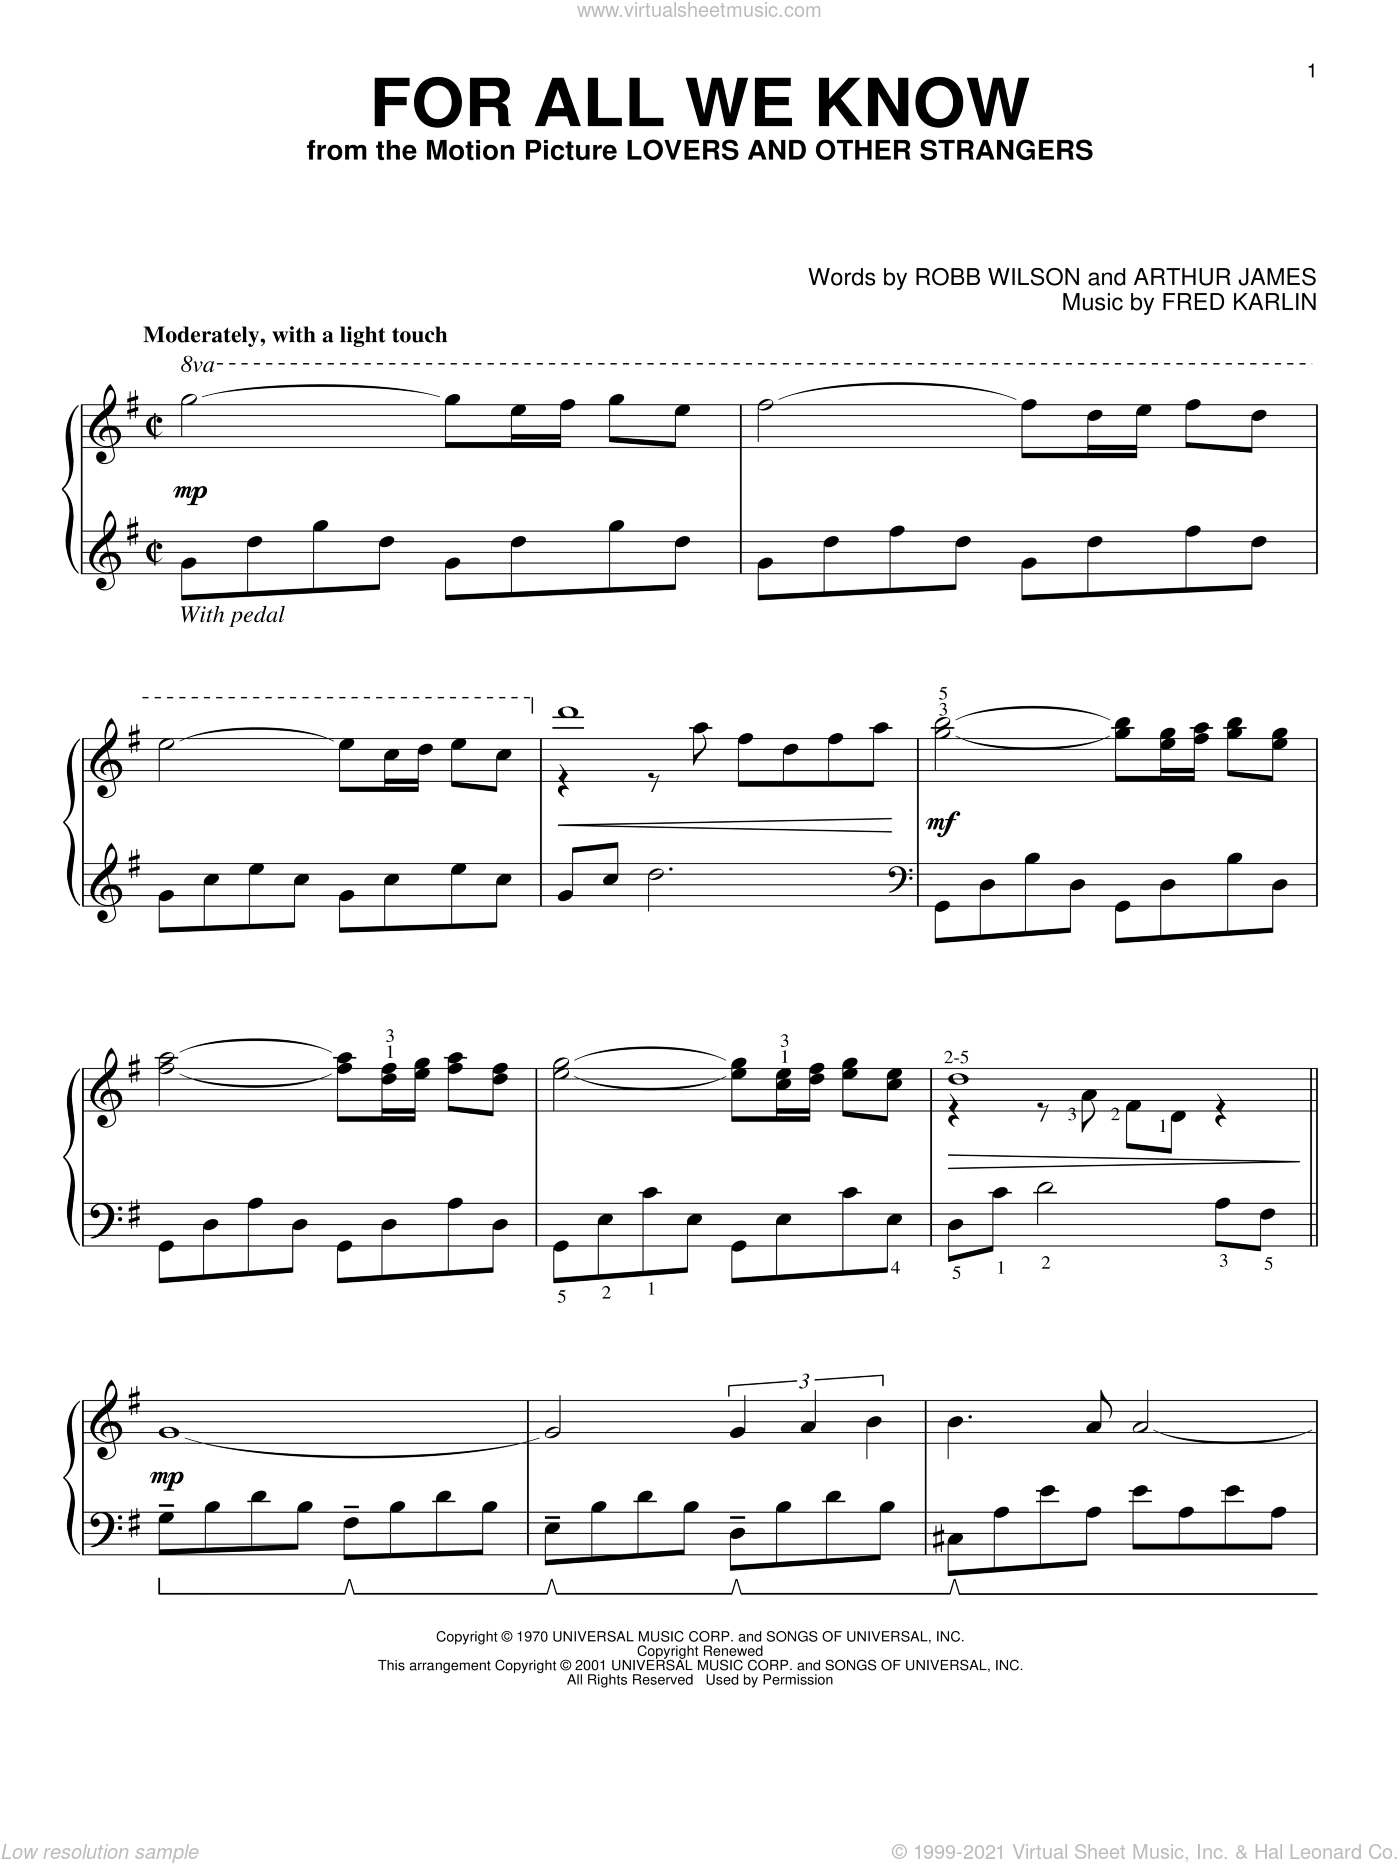 For All We Know sheet music for piano solo by Robb Wilson